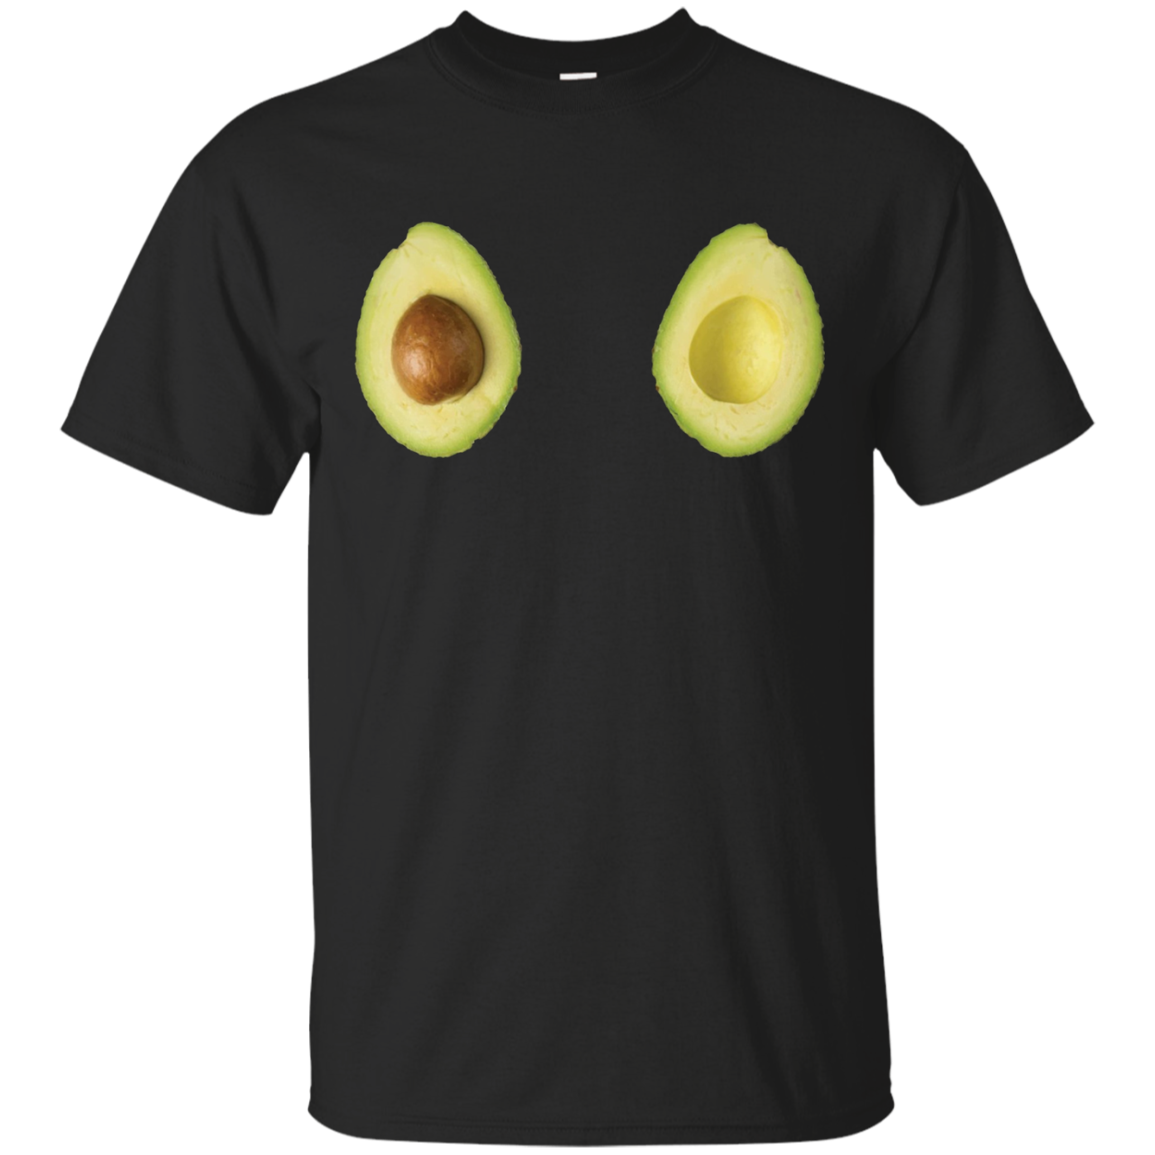 Avocado Graphic Gift T-Shirt for Keto and Vegan Diets